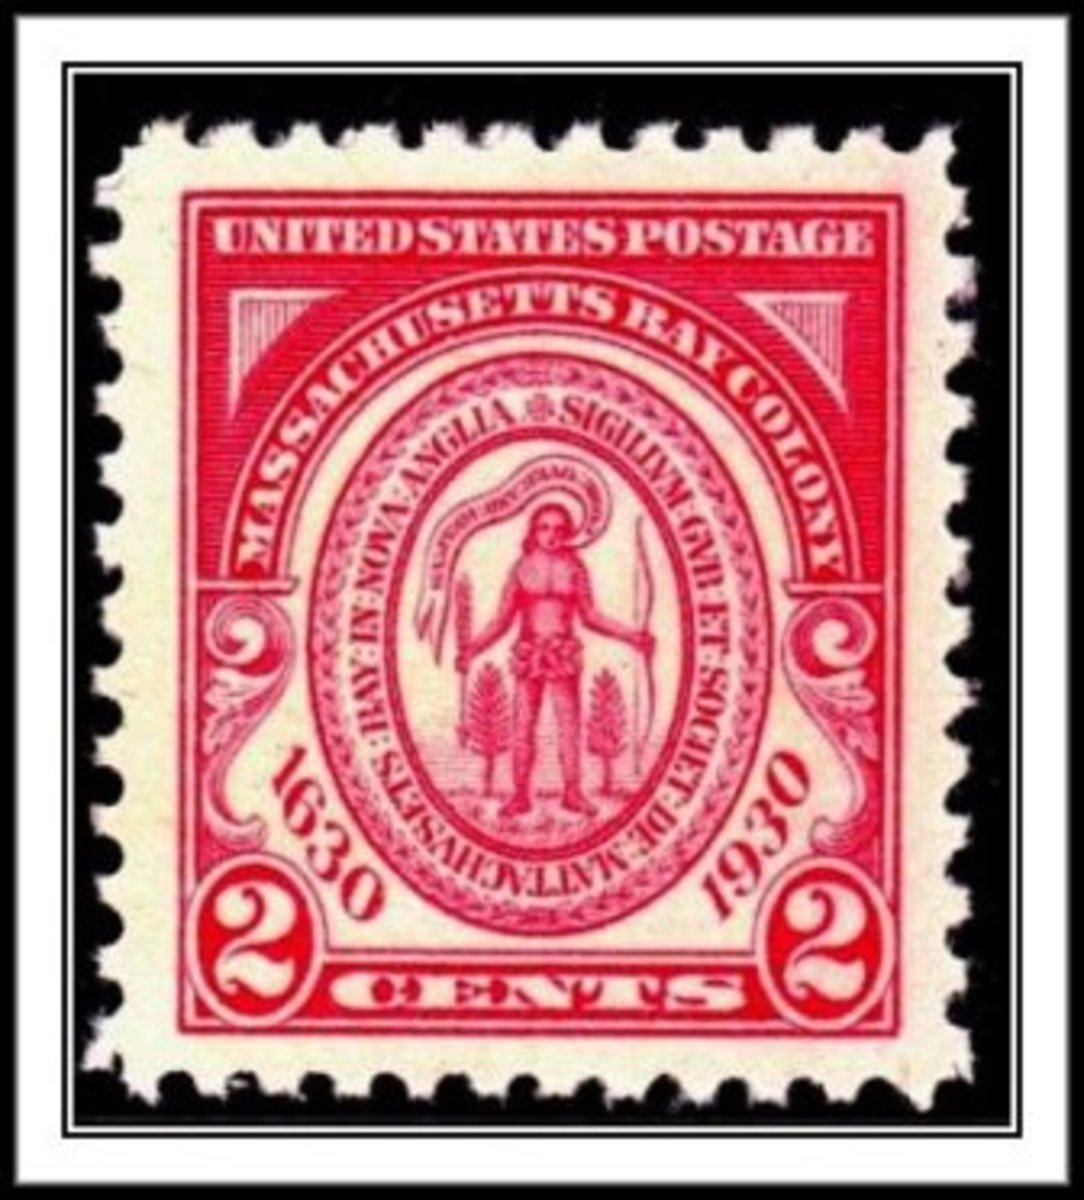 300th Anniversary Stamp